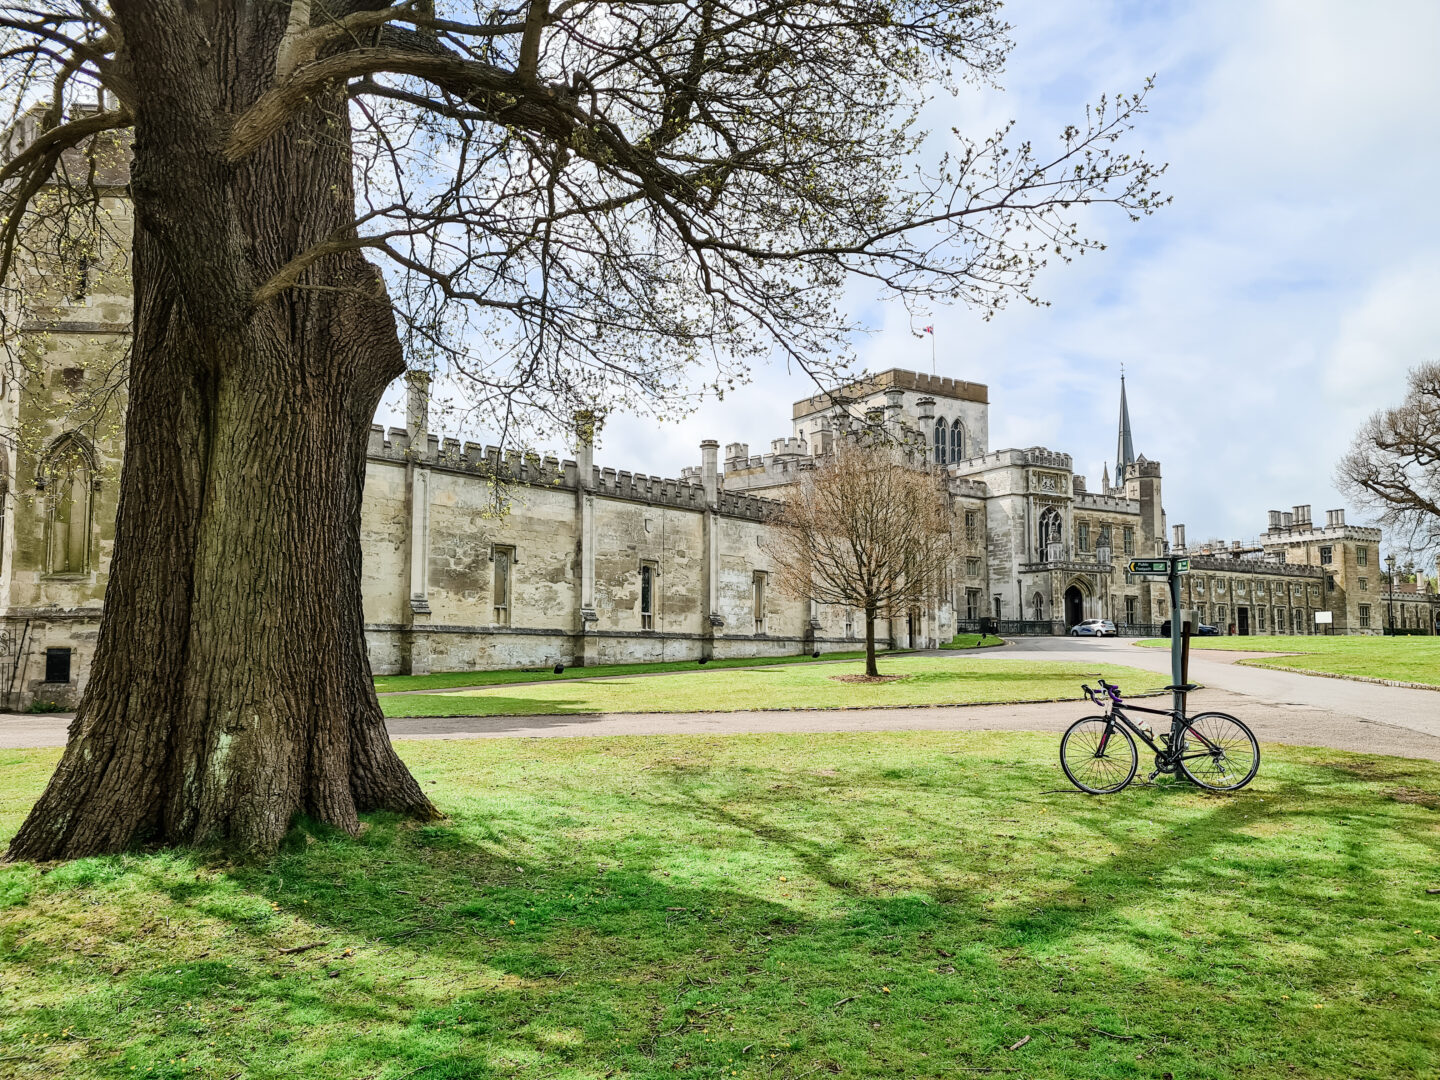 A road bike leans up against a road sign with Ashridge College, an imposing building in the background.